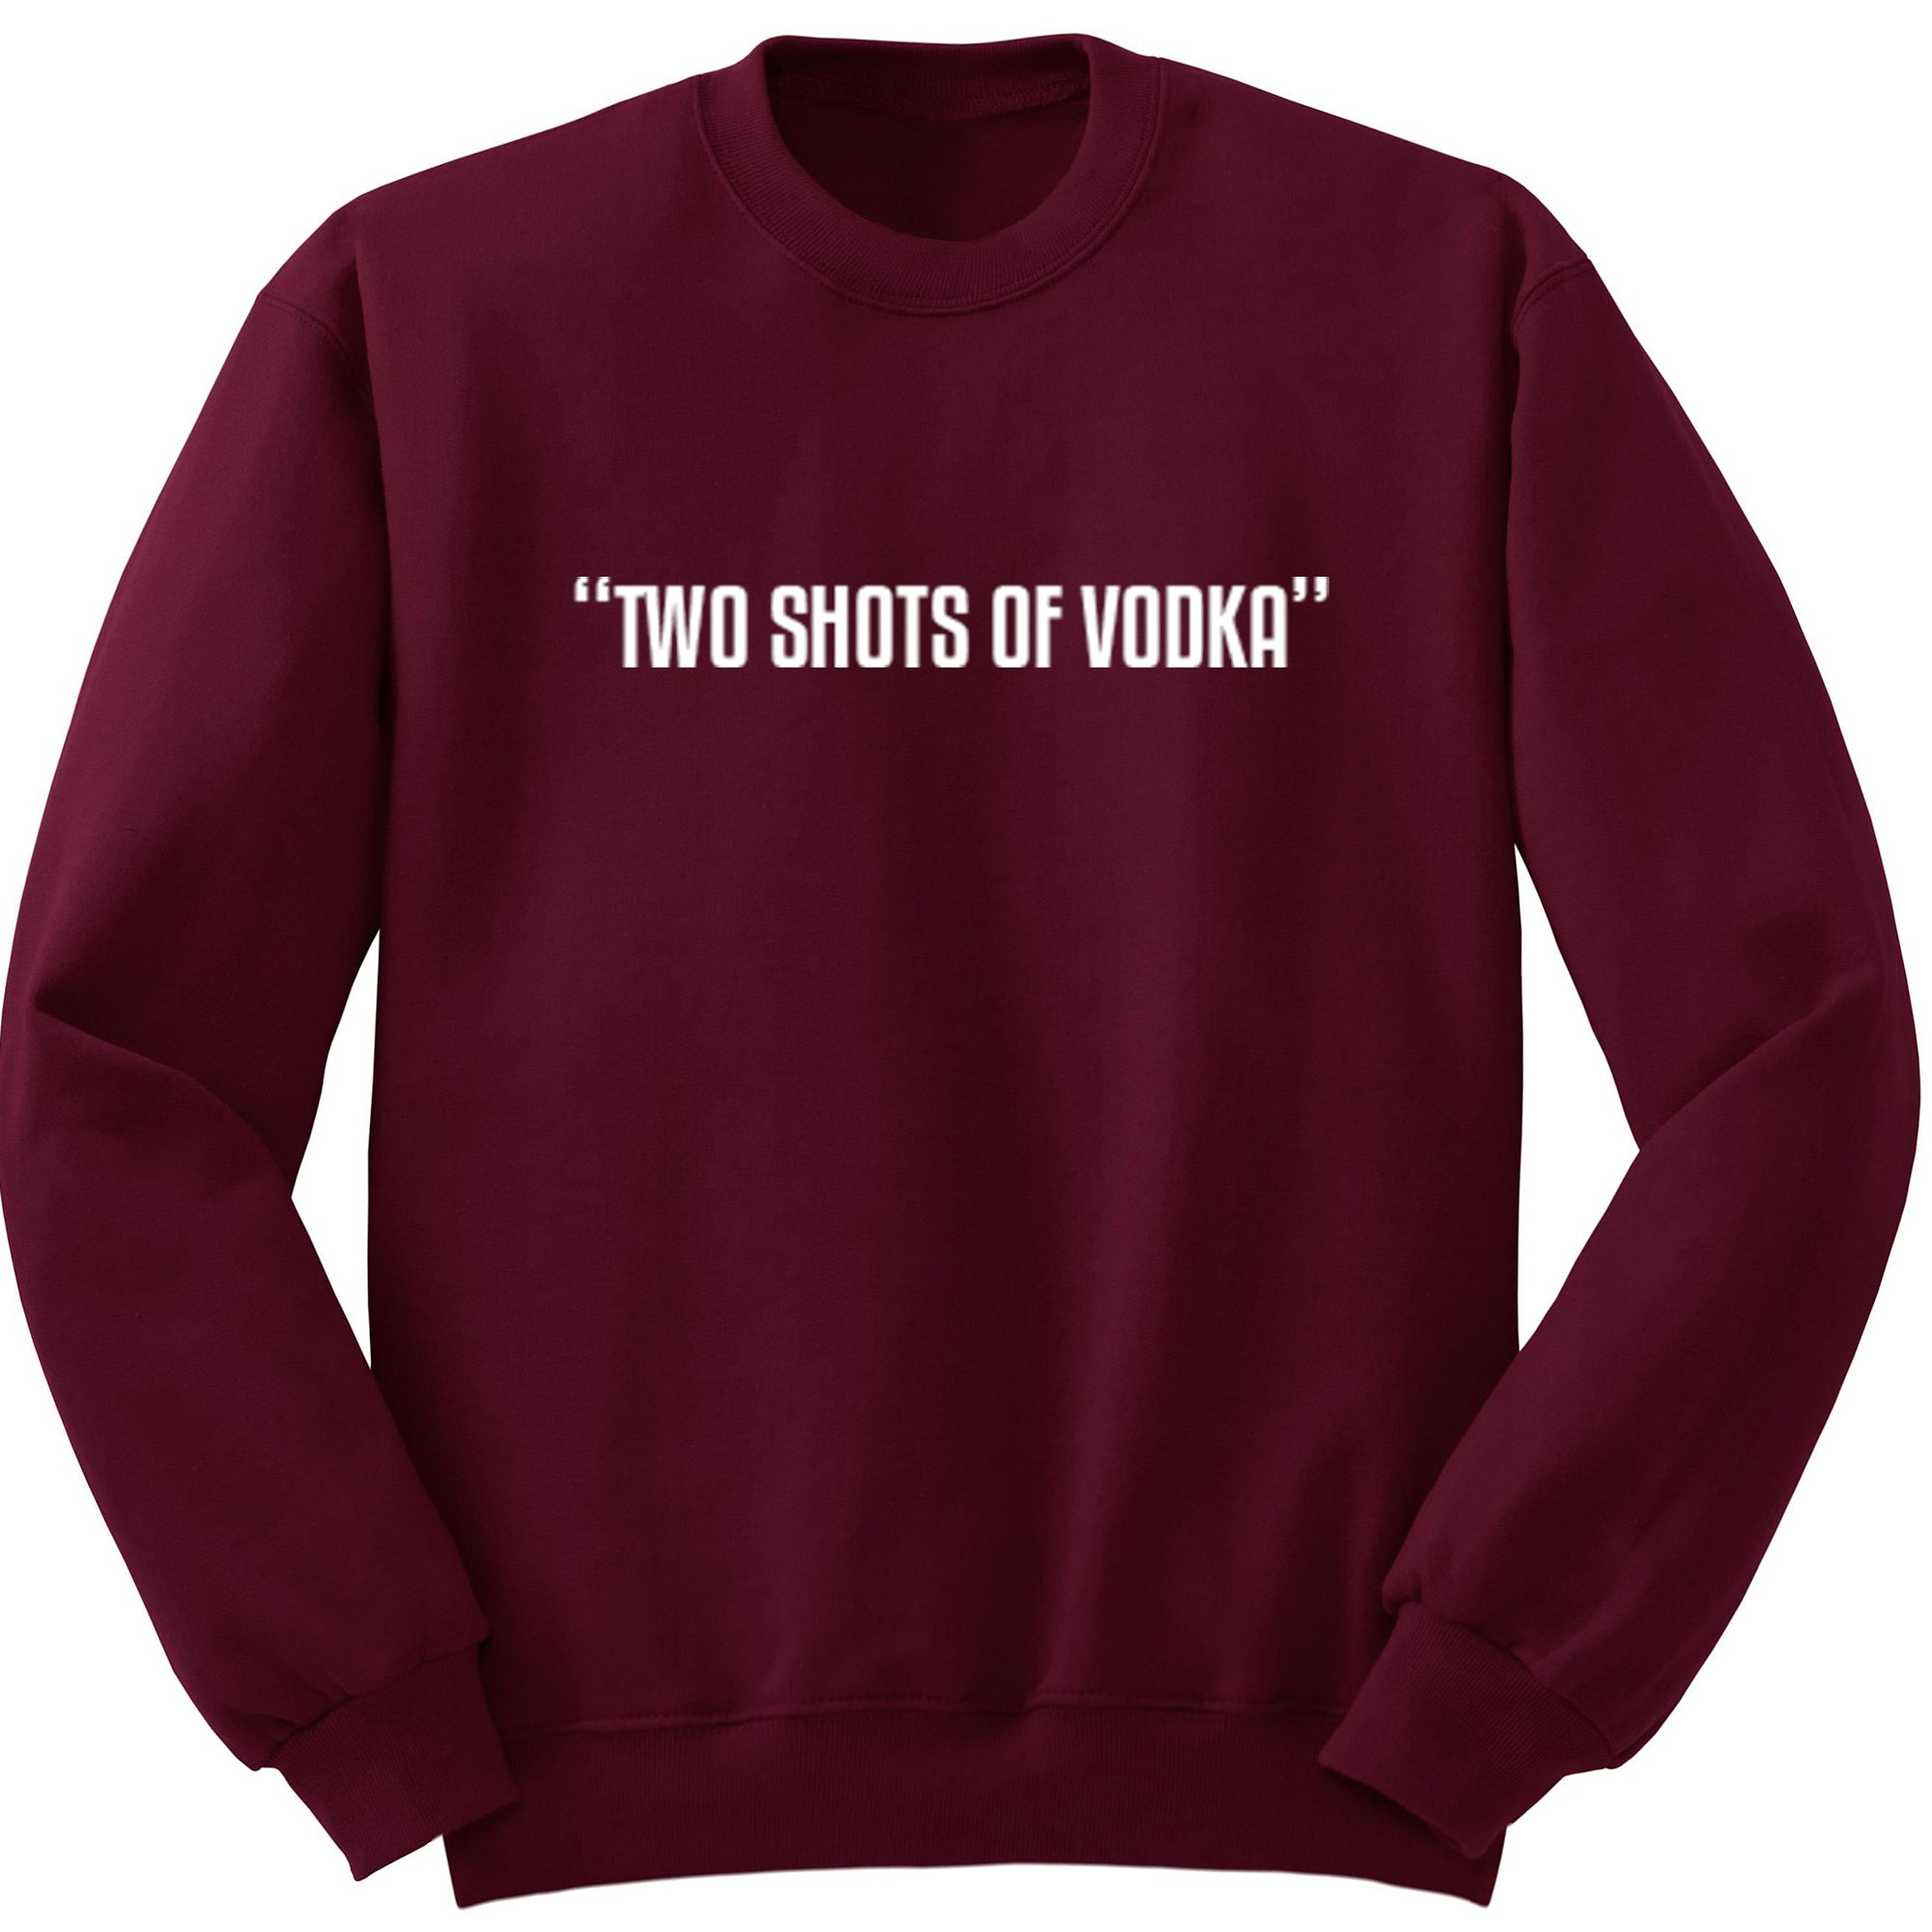 Two Shots Of Vodka Unisex Jumper S0248 - Illustrated Identity Ltd.